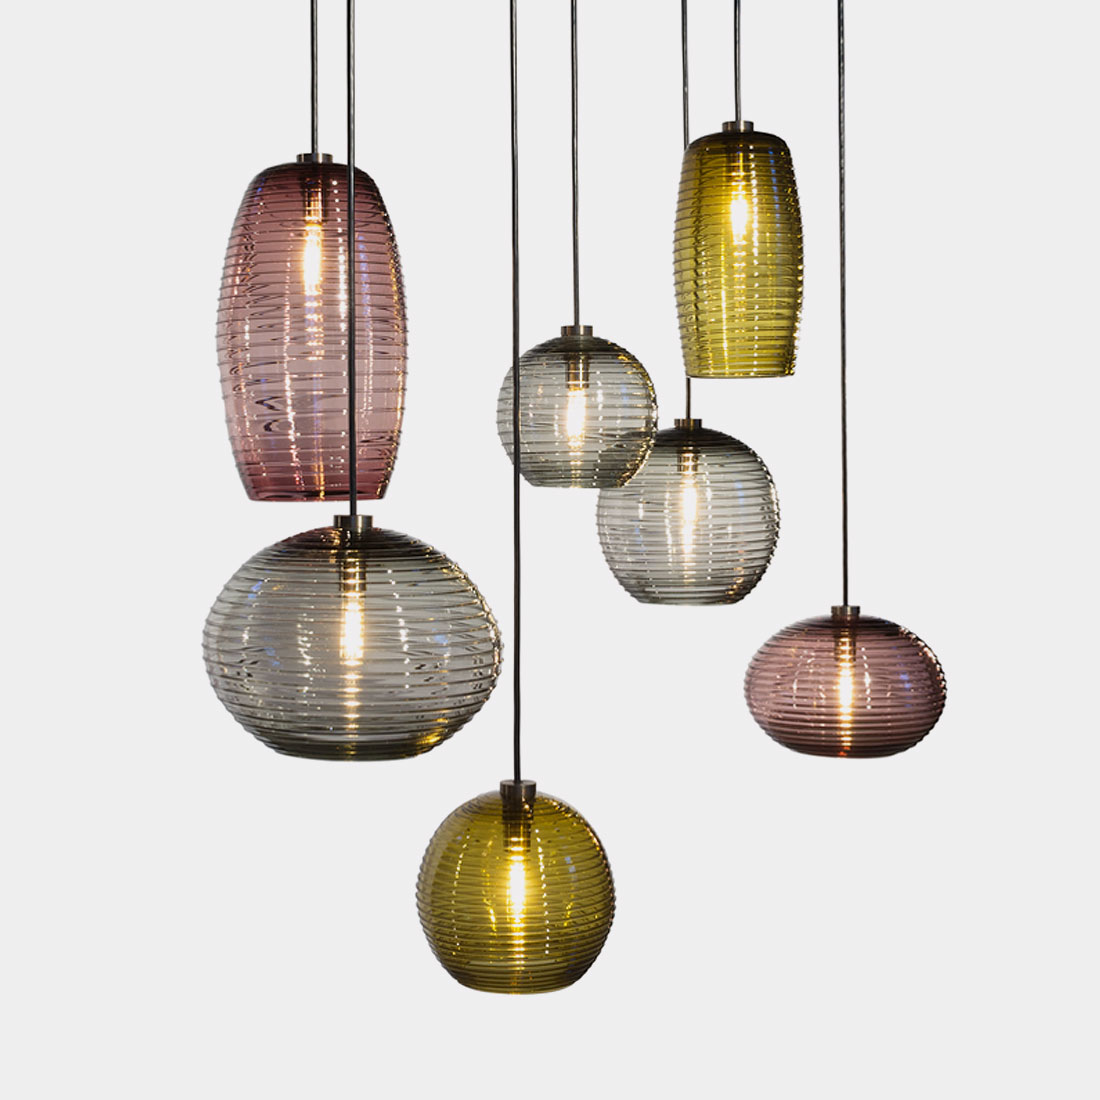 Lucia chandelier tracy glover studio official website aloadofball Choice Image